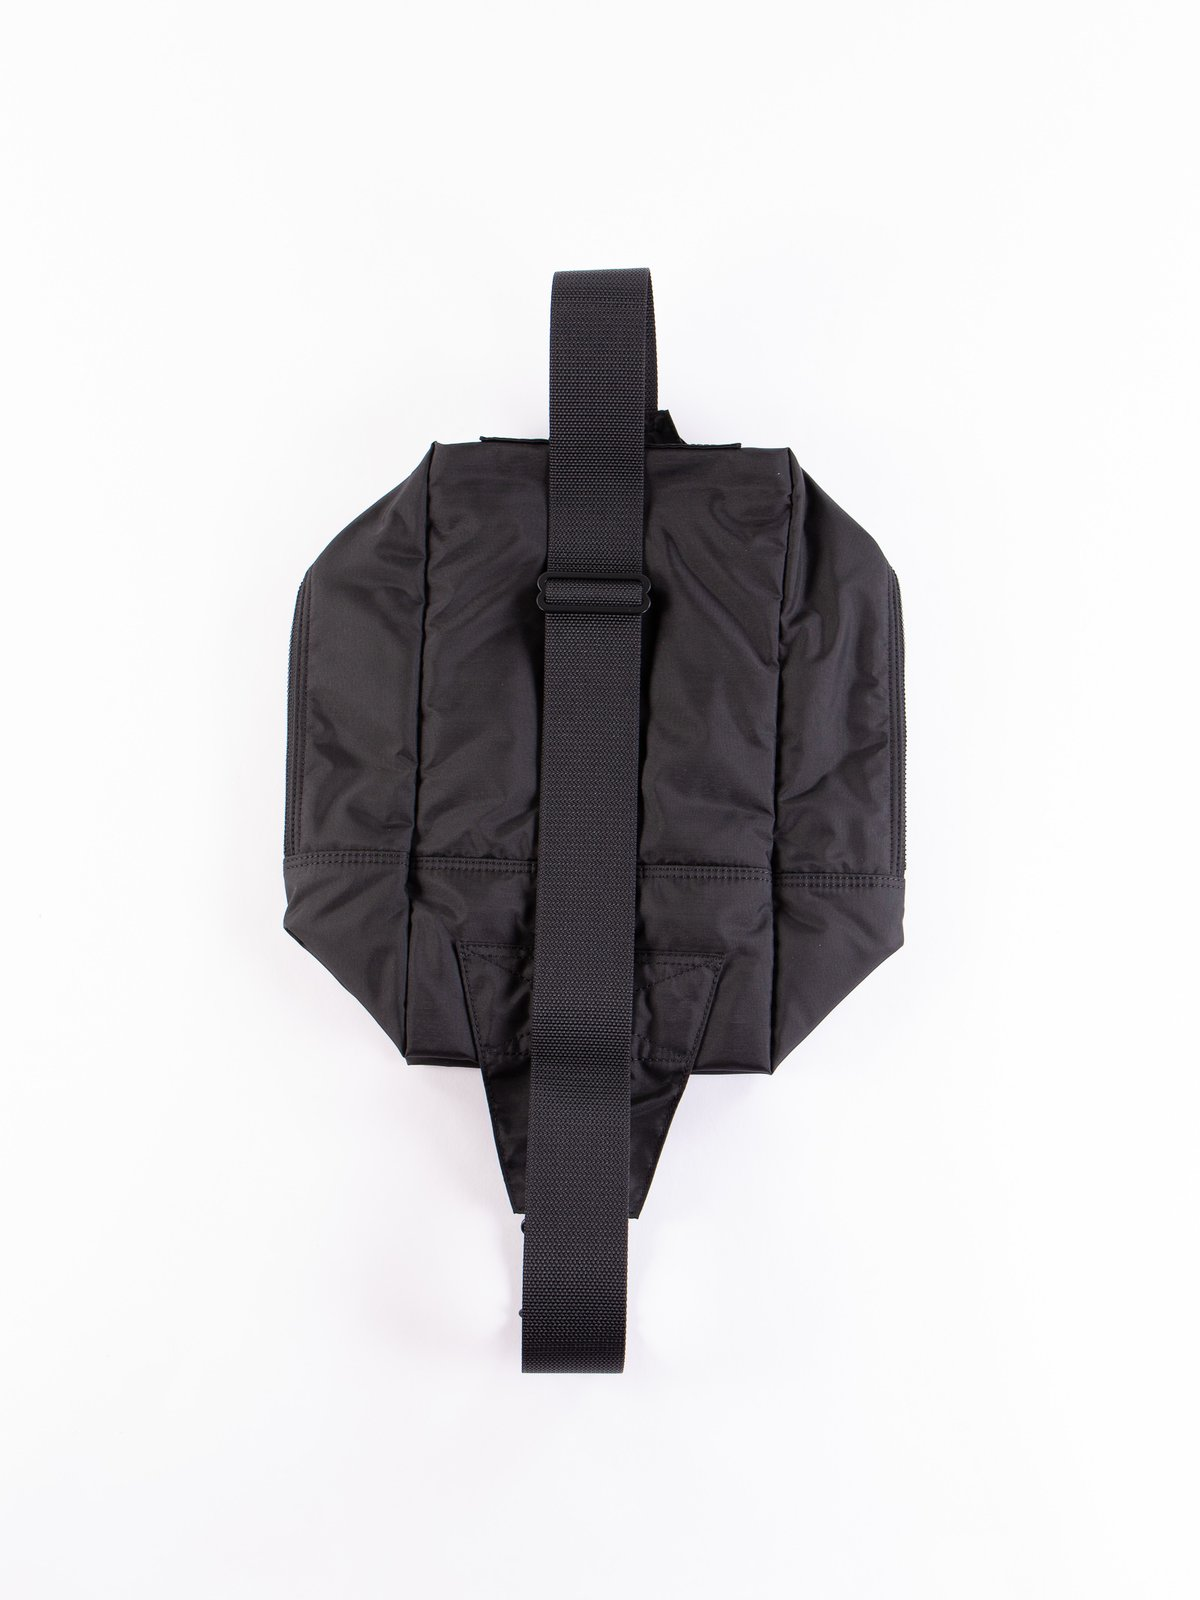 Black Force Sling Shoulder Bag - Image 3